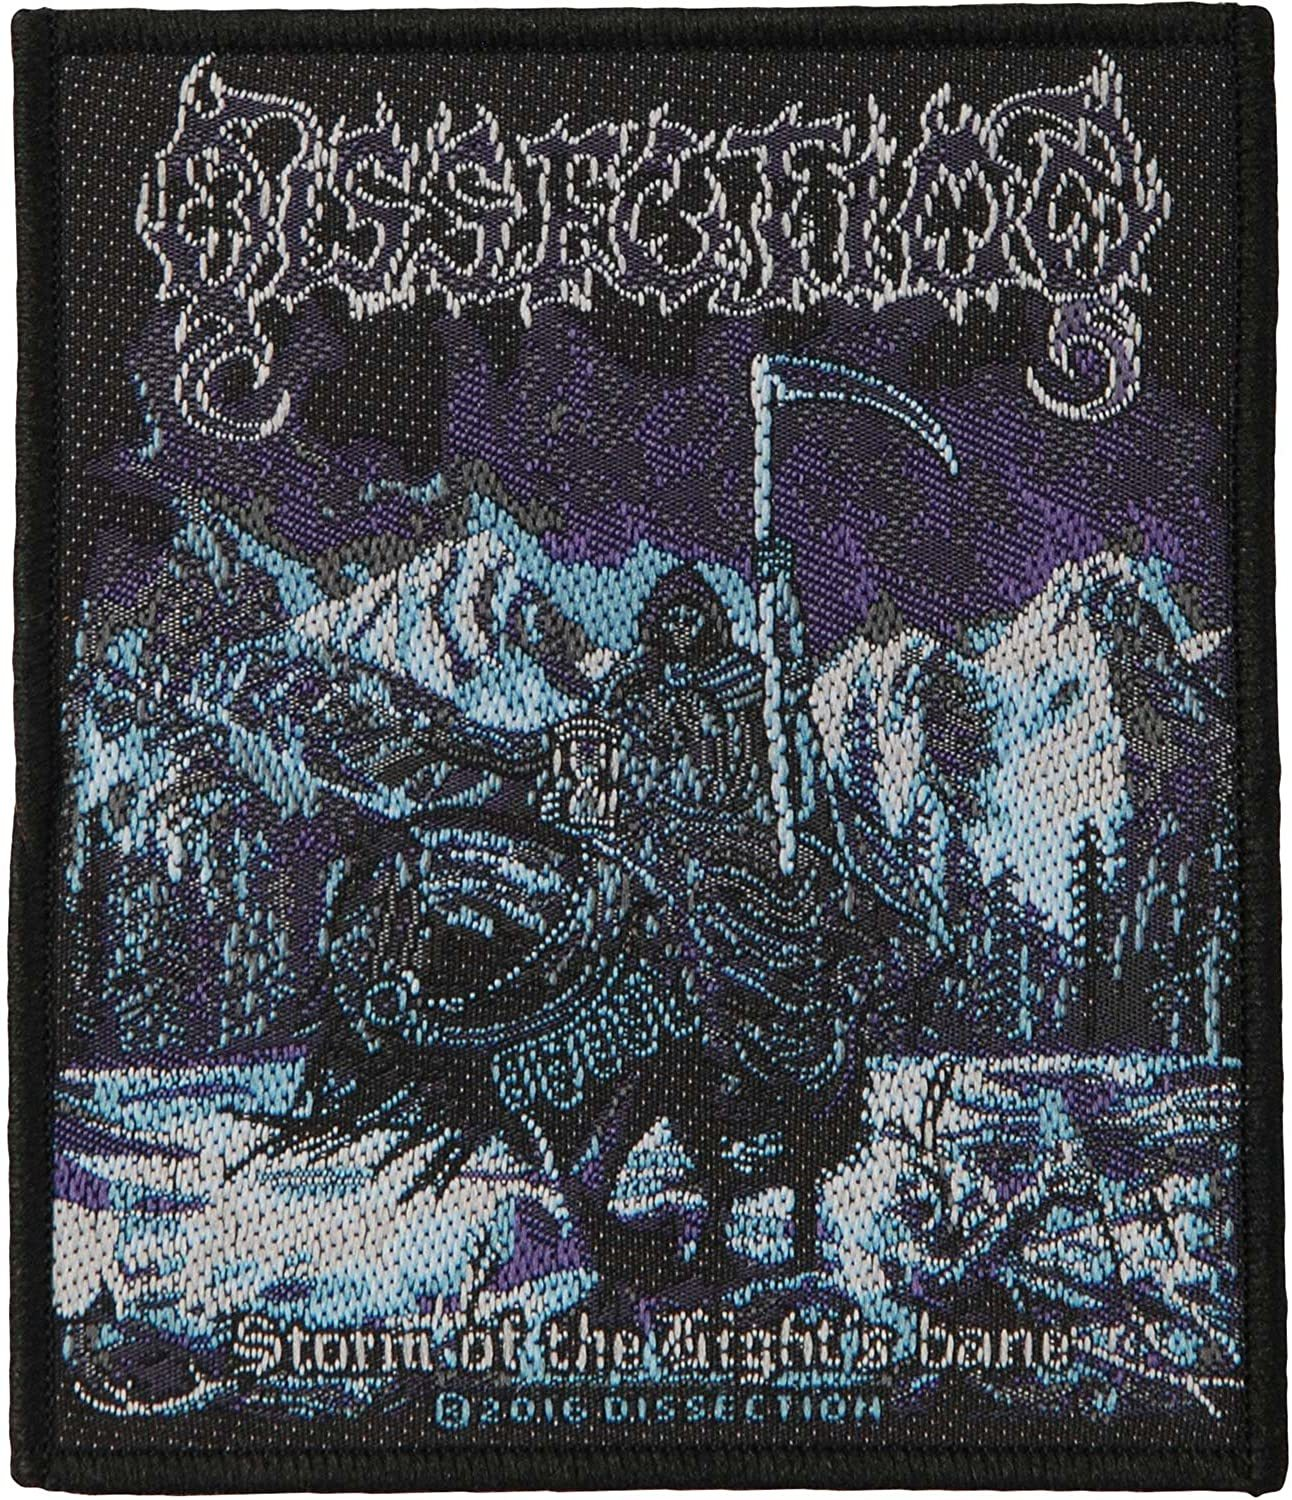 Dissection-Storm Of The Lights Bane Woven Patch.jpg